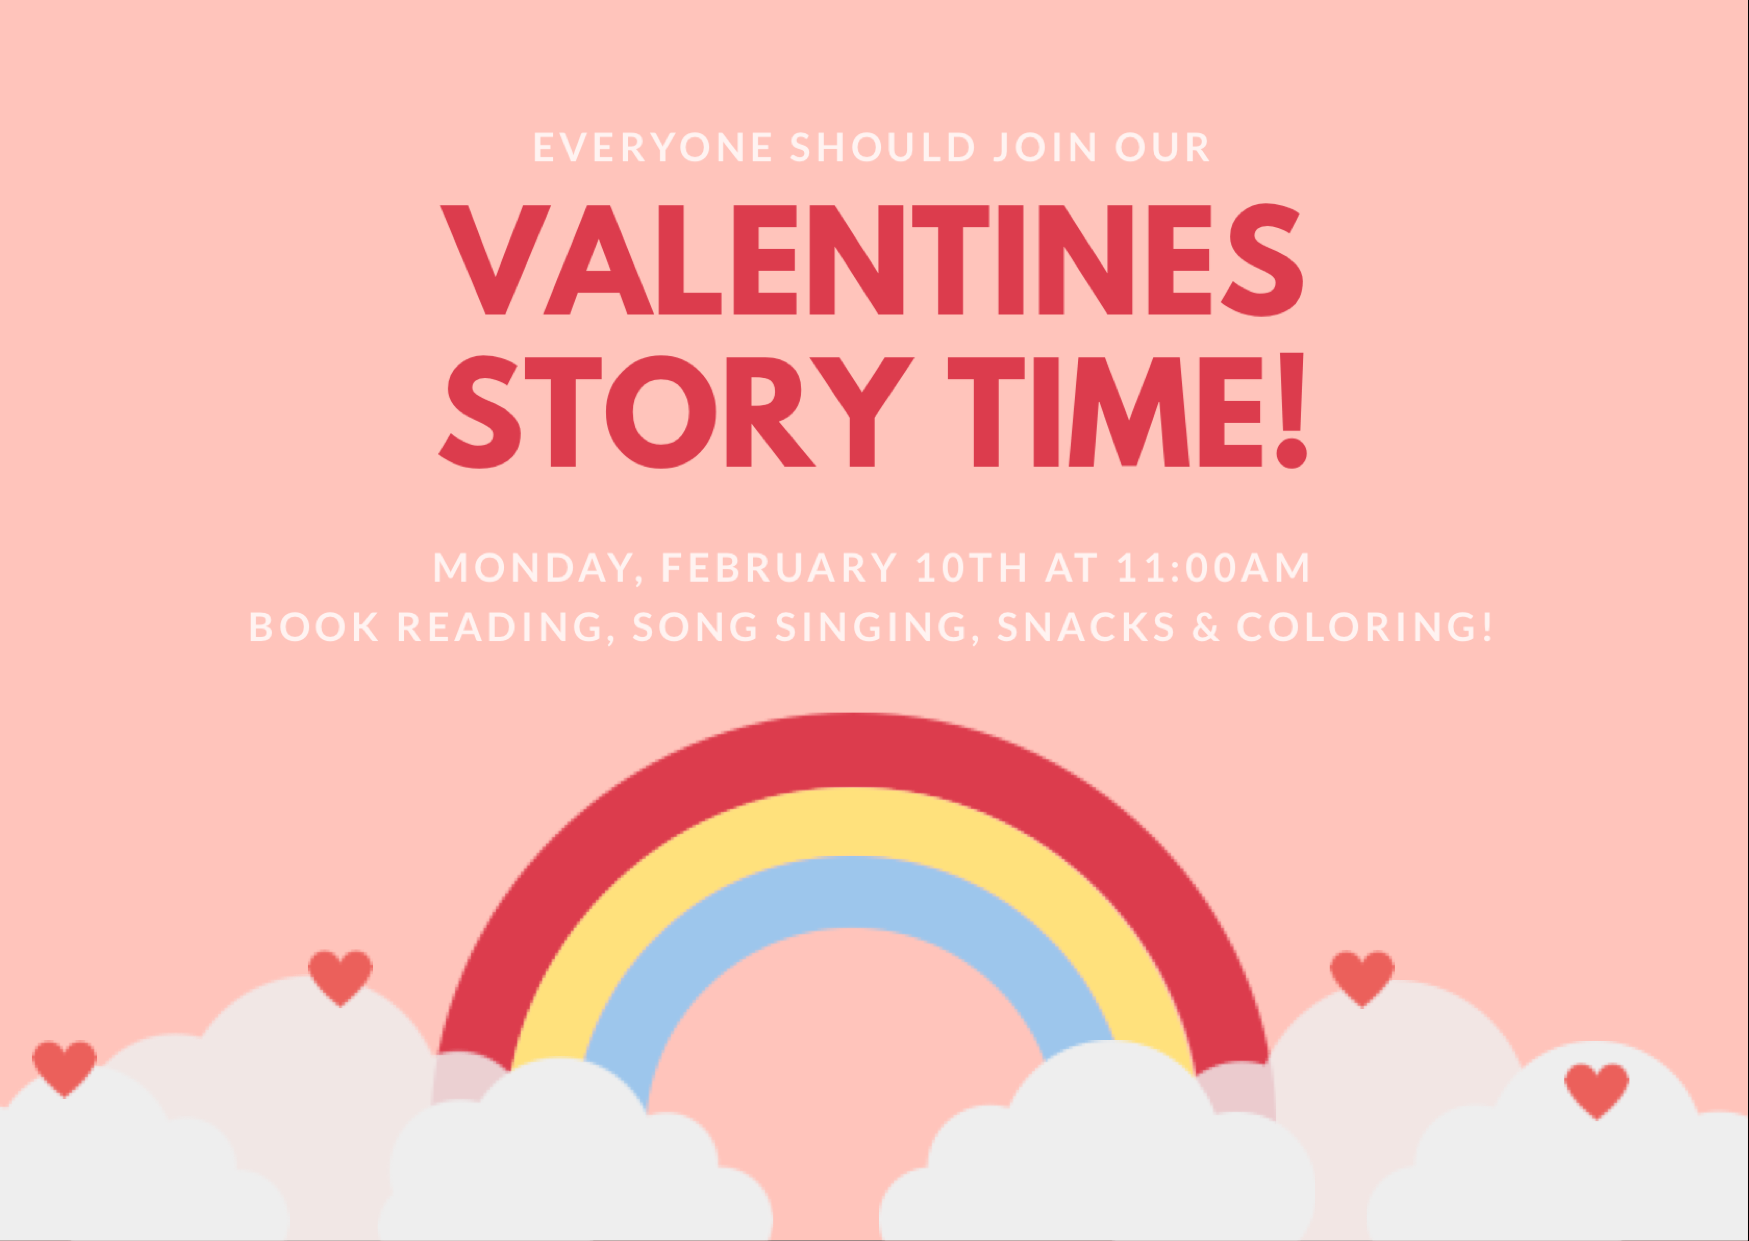 Valentines Story Time!